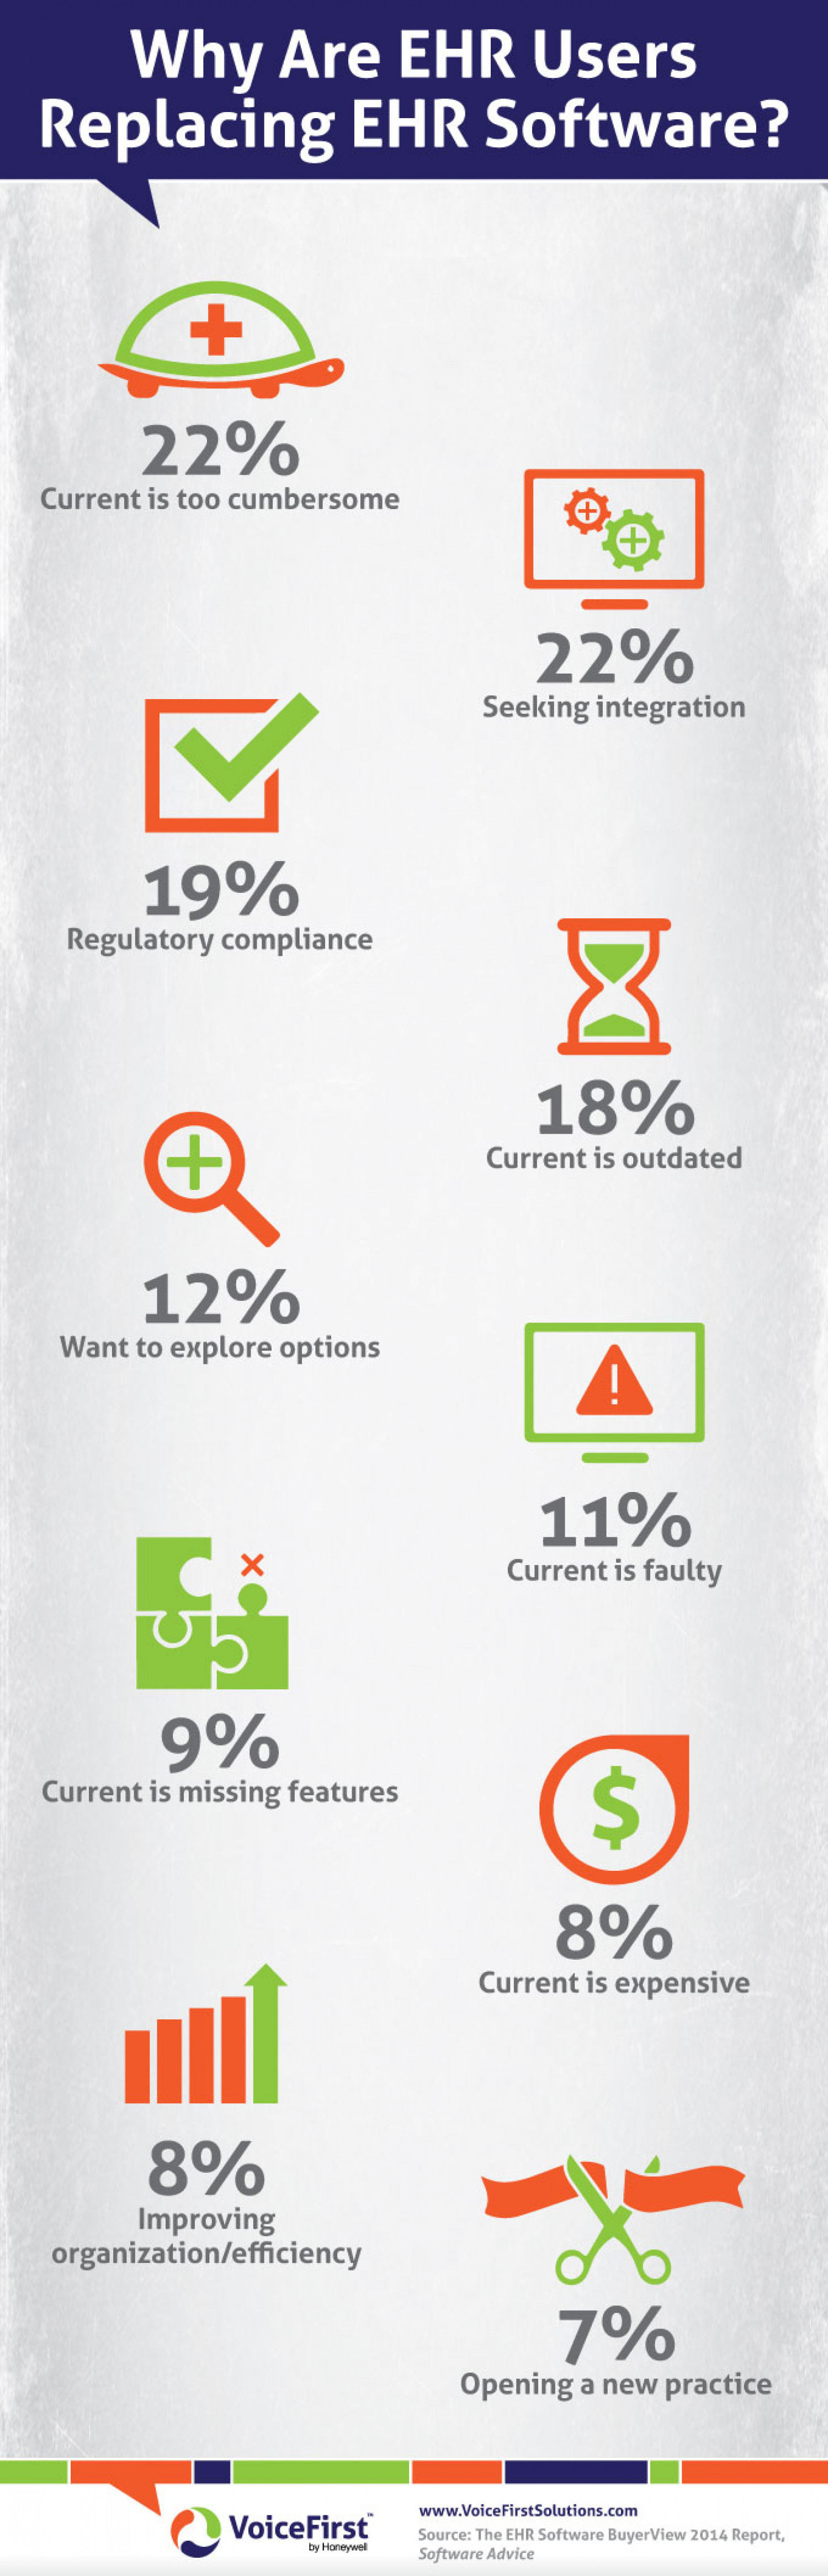 Why Are EHR Users Replacing EHR Software? Infographic